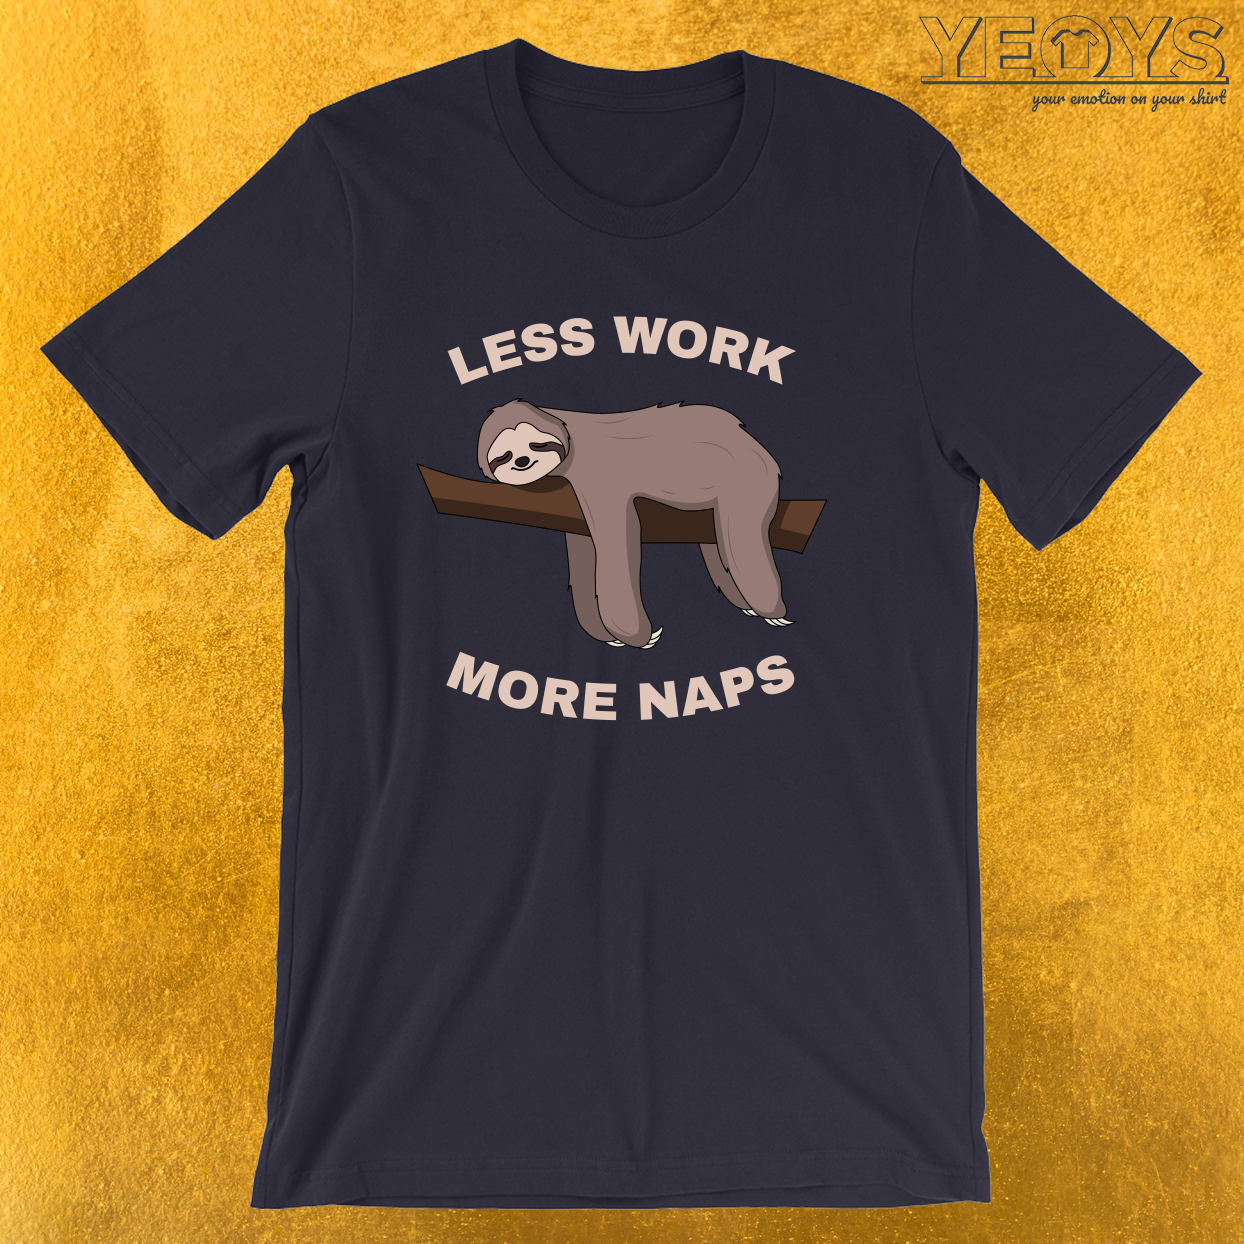 Less Work More Naps – Funny Sloth Tee